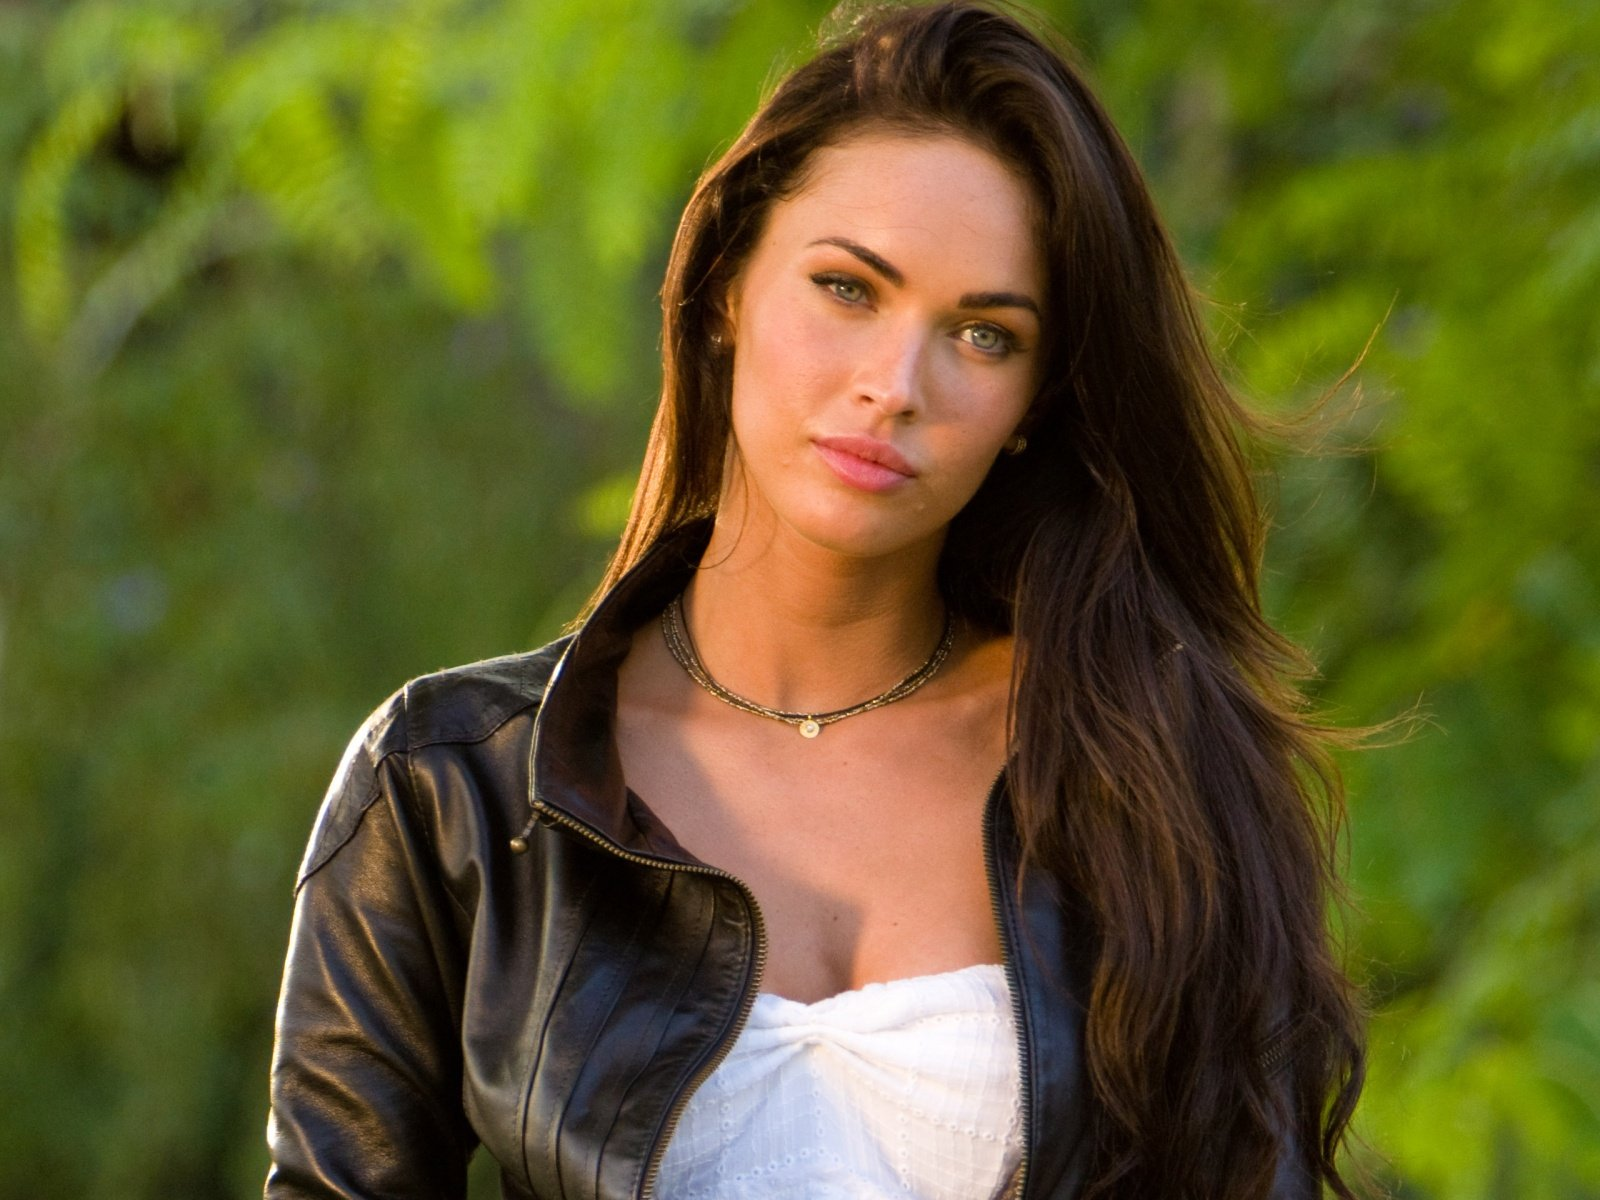 Freaking Spot Megan Fox Full HD 1080p Wallpapers 1600x1200